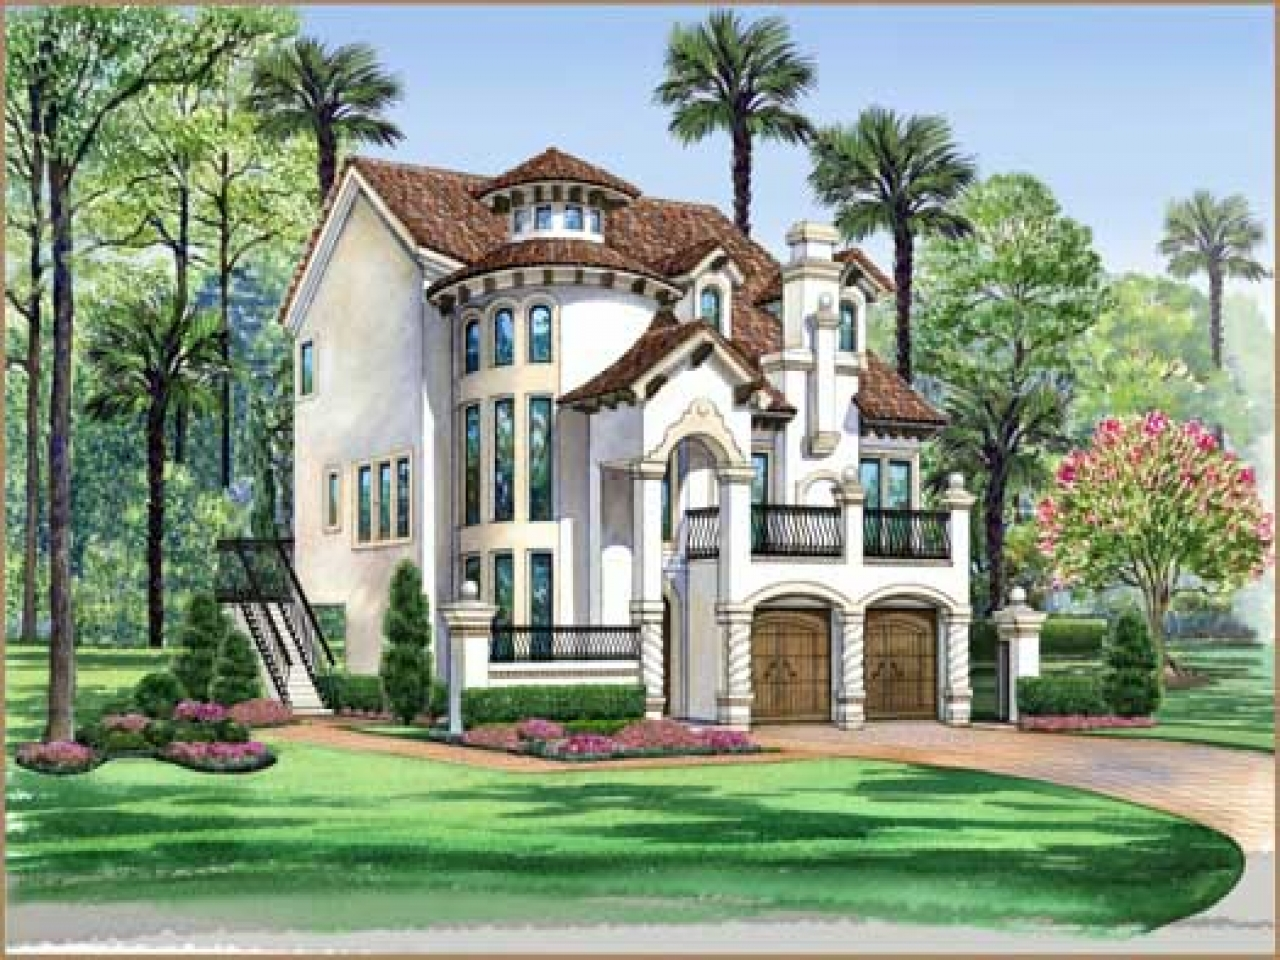 3-Story House with Pool 3 Story Mediterranean House Plans ...